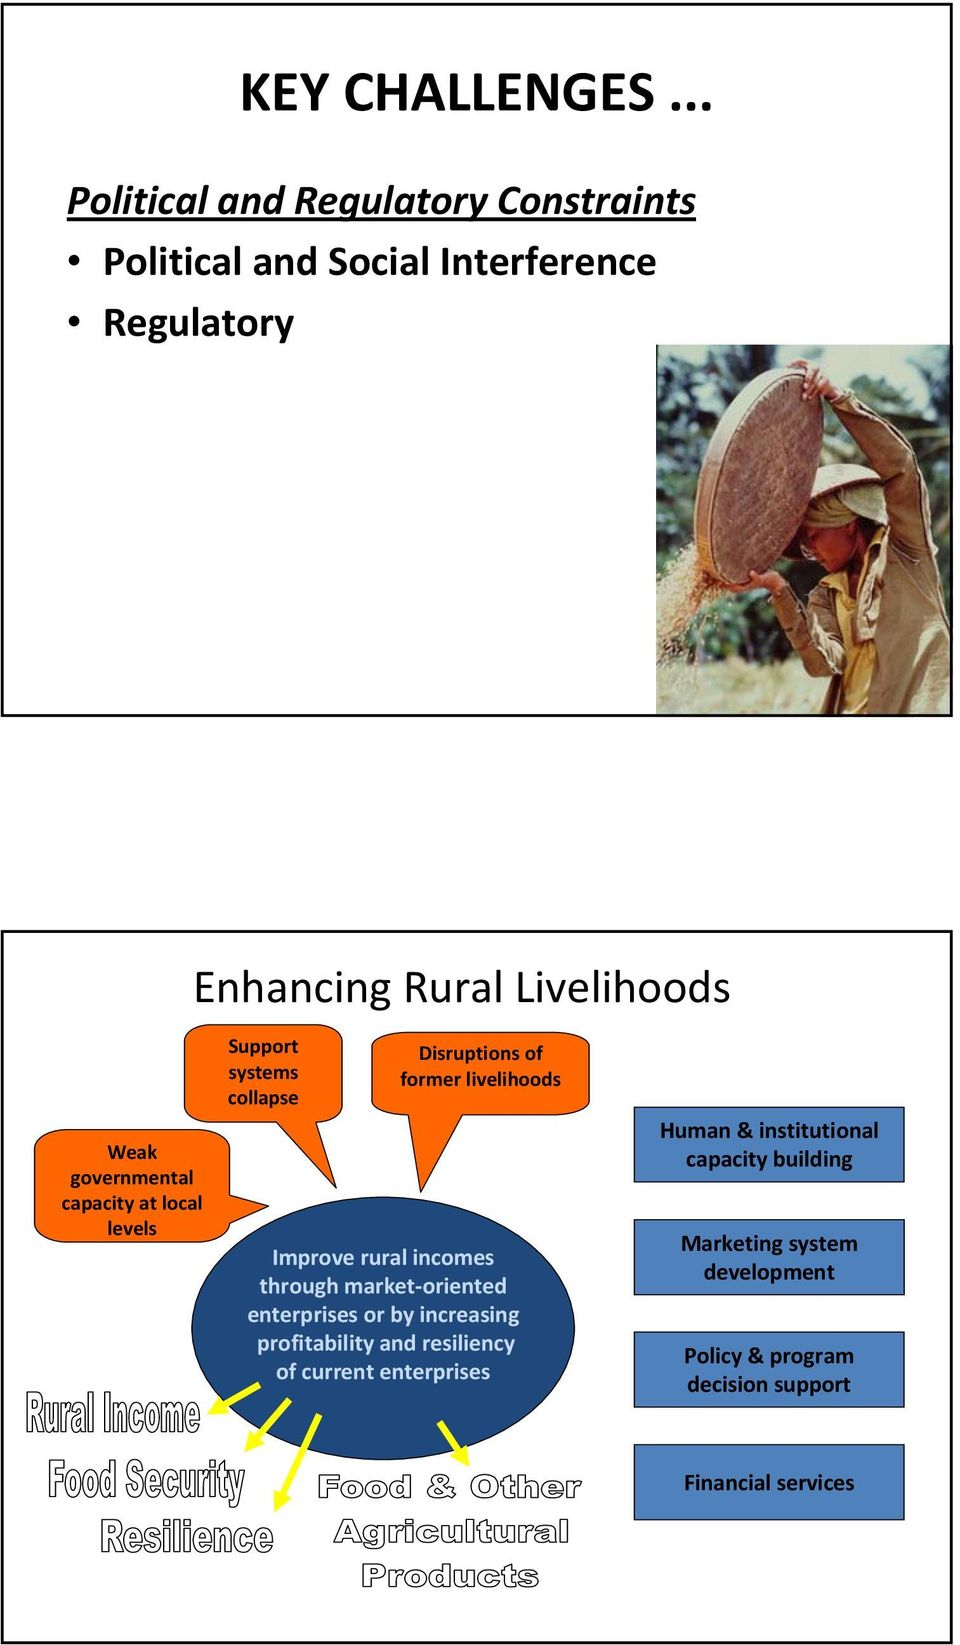 governmental capacity at local levels Support systems collapse Disruptions of former livelihoods Improve rural incomes